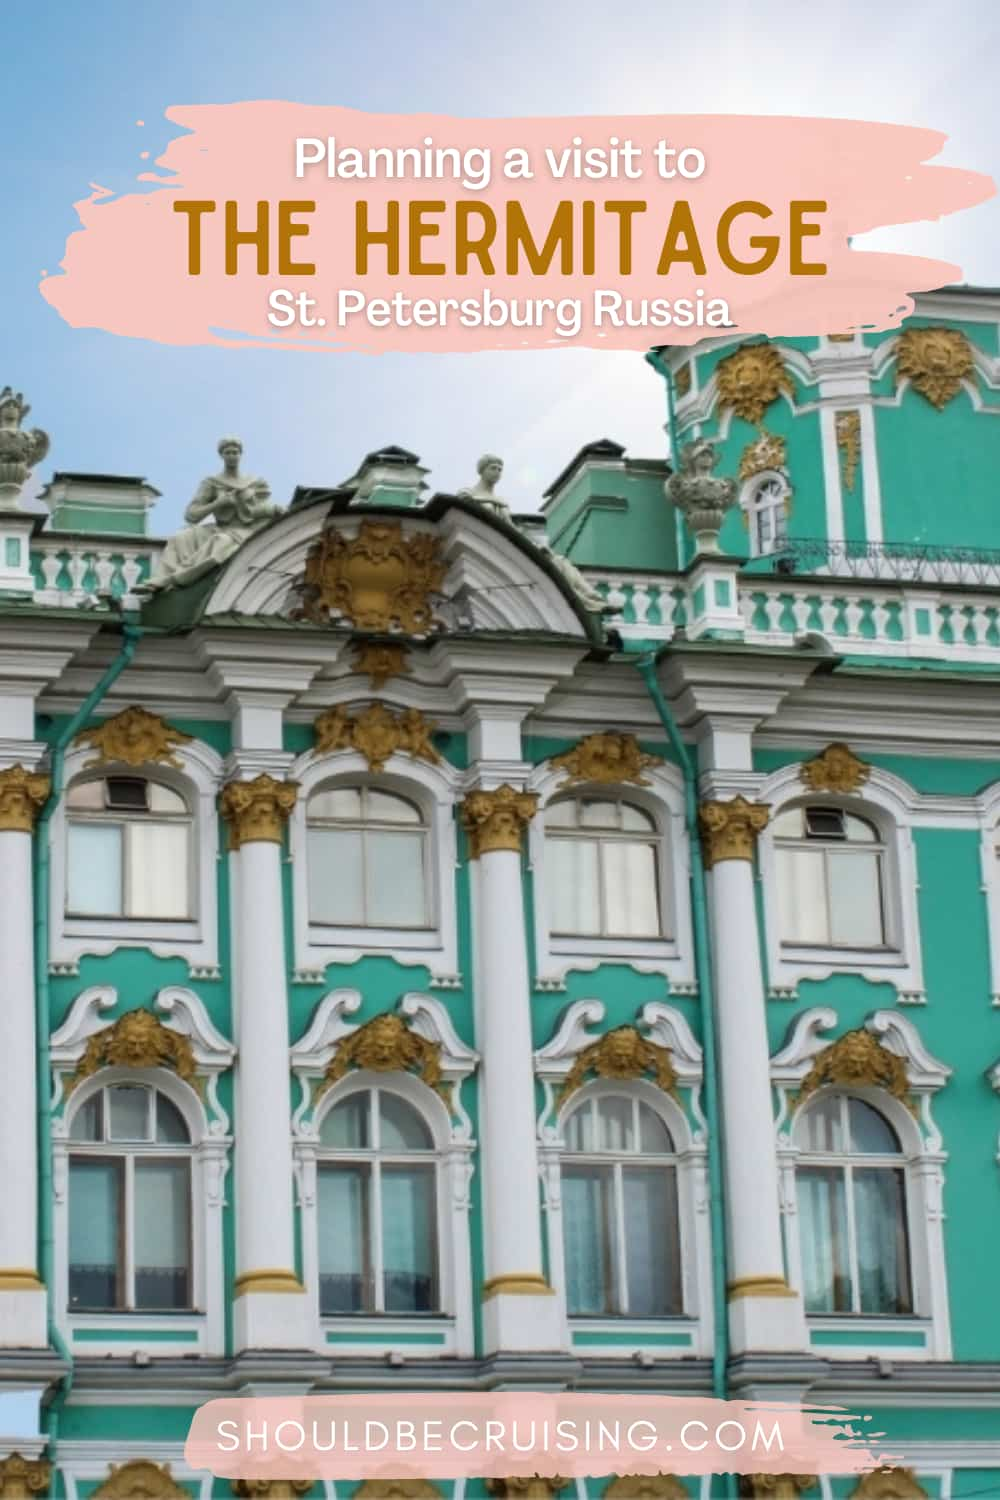 Visiting The Hermitage in St. Petersburg Russia